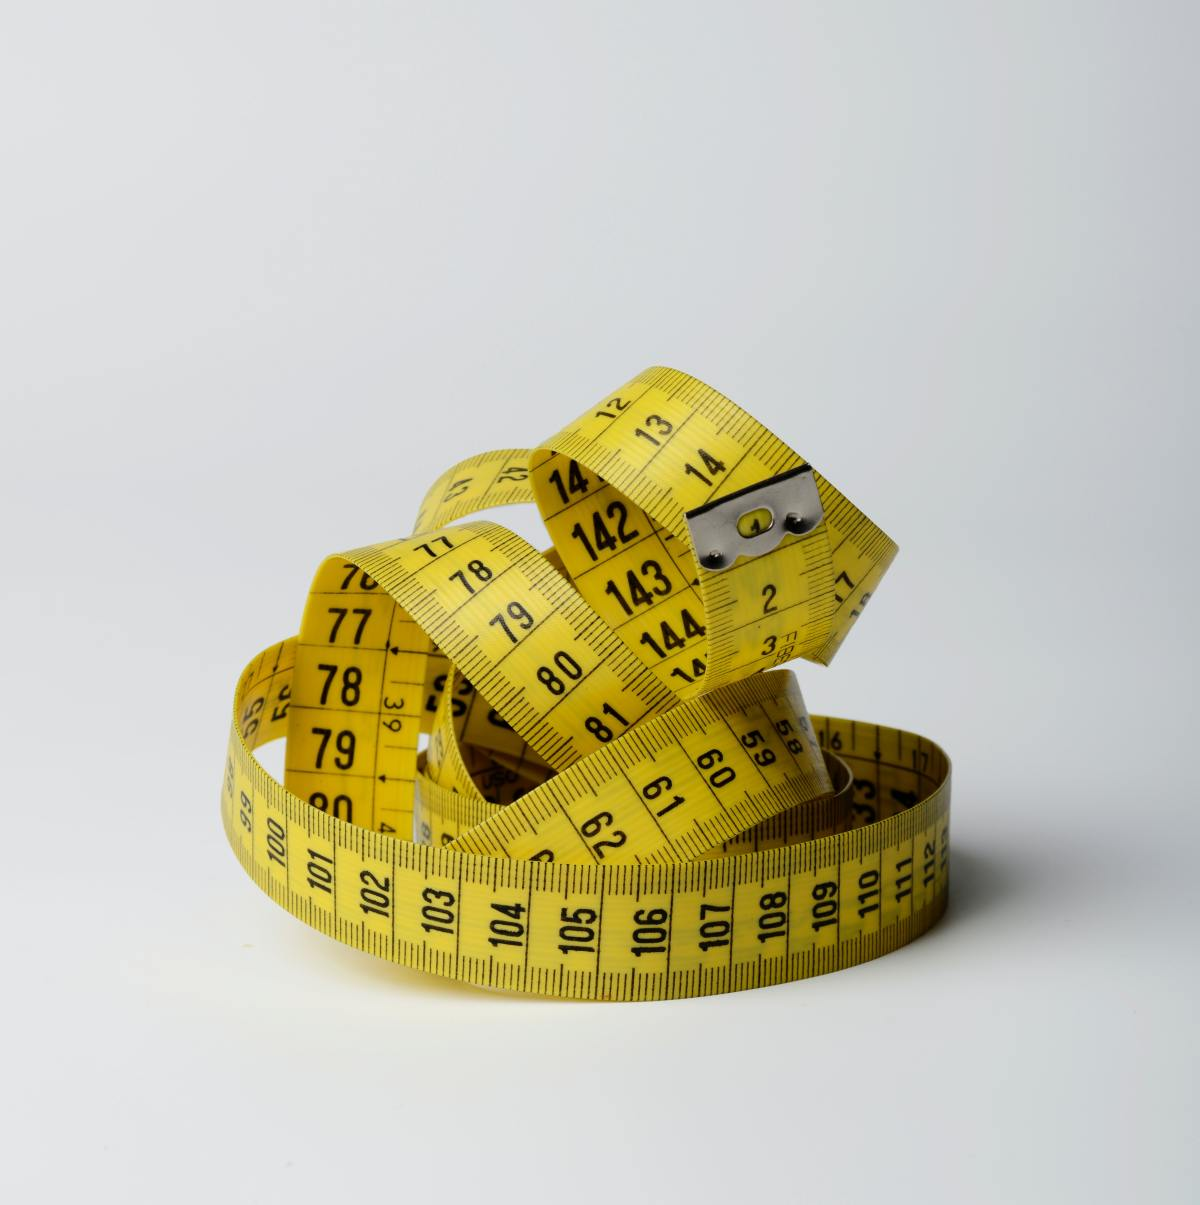 Close up photo of yellow tape measure 3143082